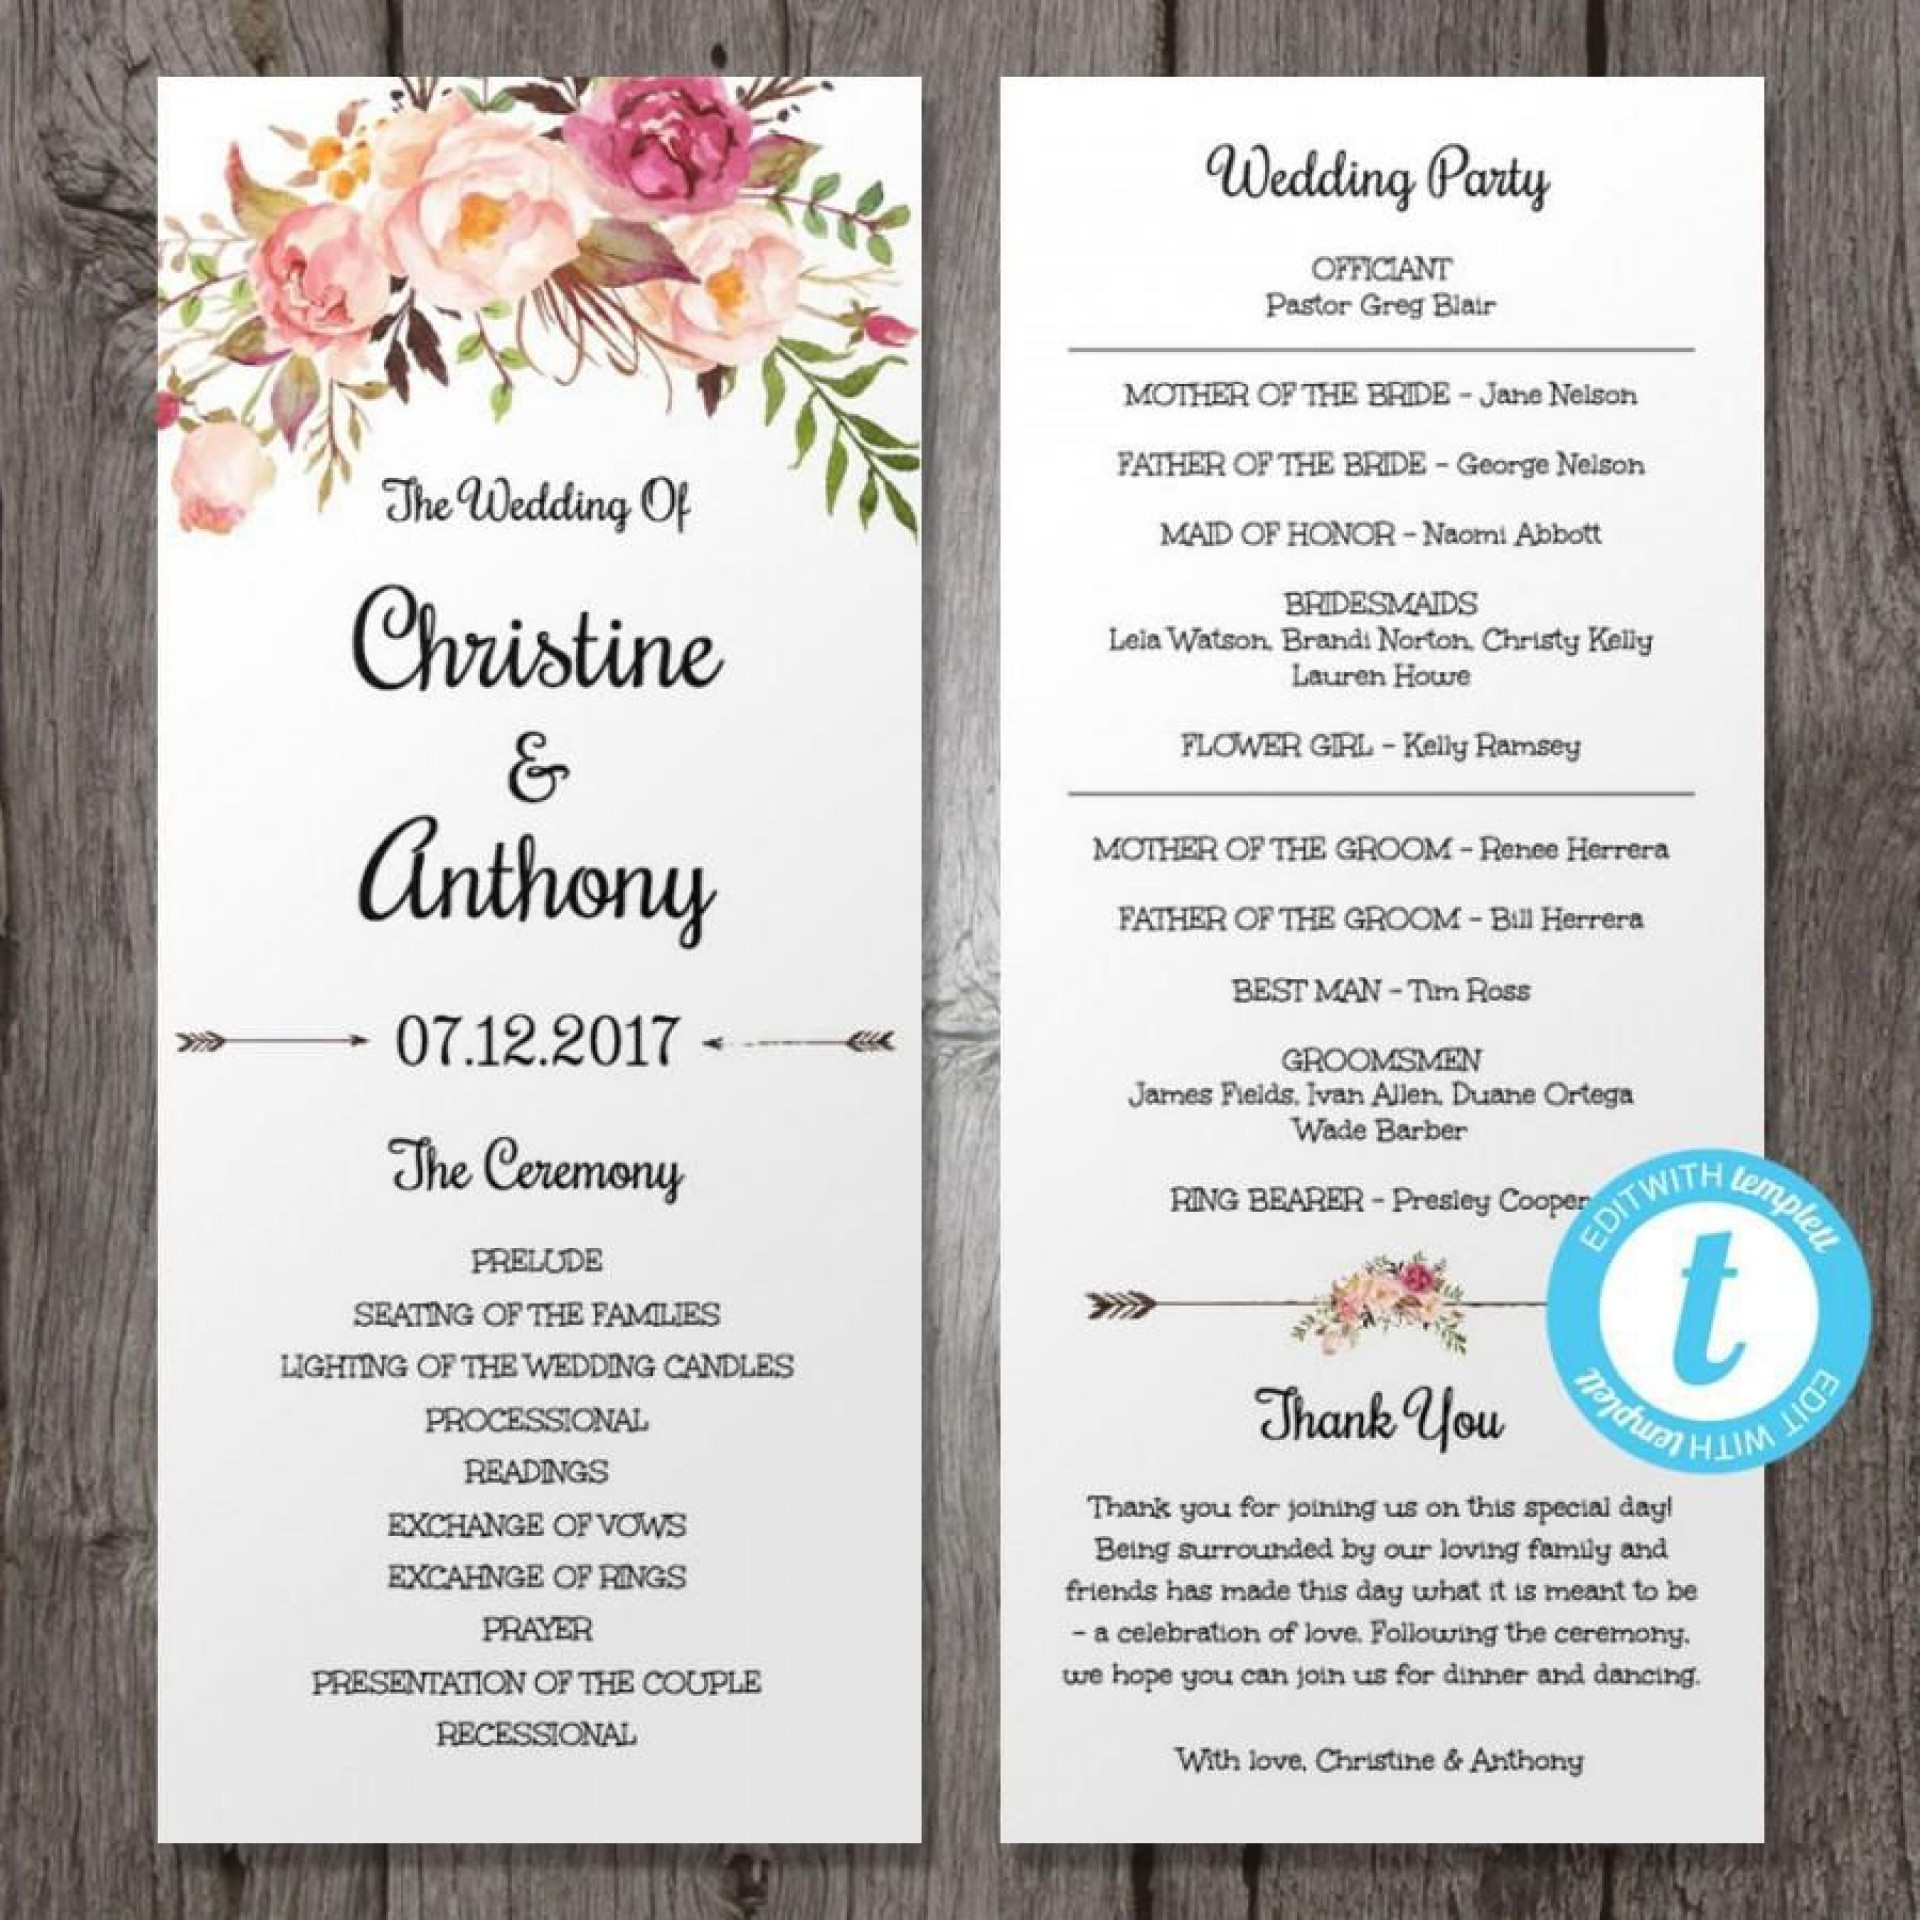 006 Outstanding Wedding Program Template Free Download Picture  Downloadable Fan Microsoft Word Printable Editable1920